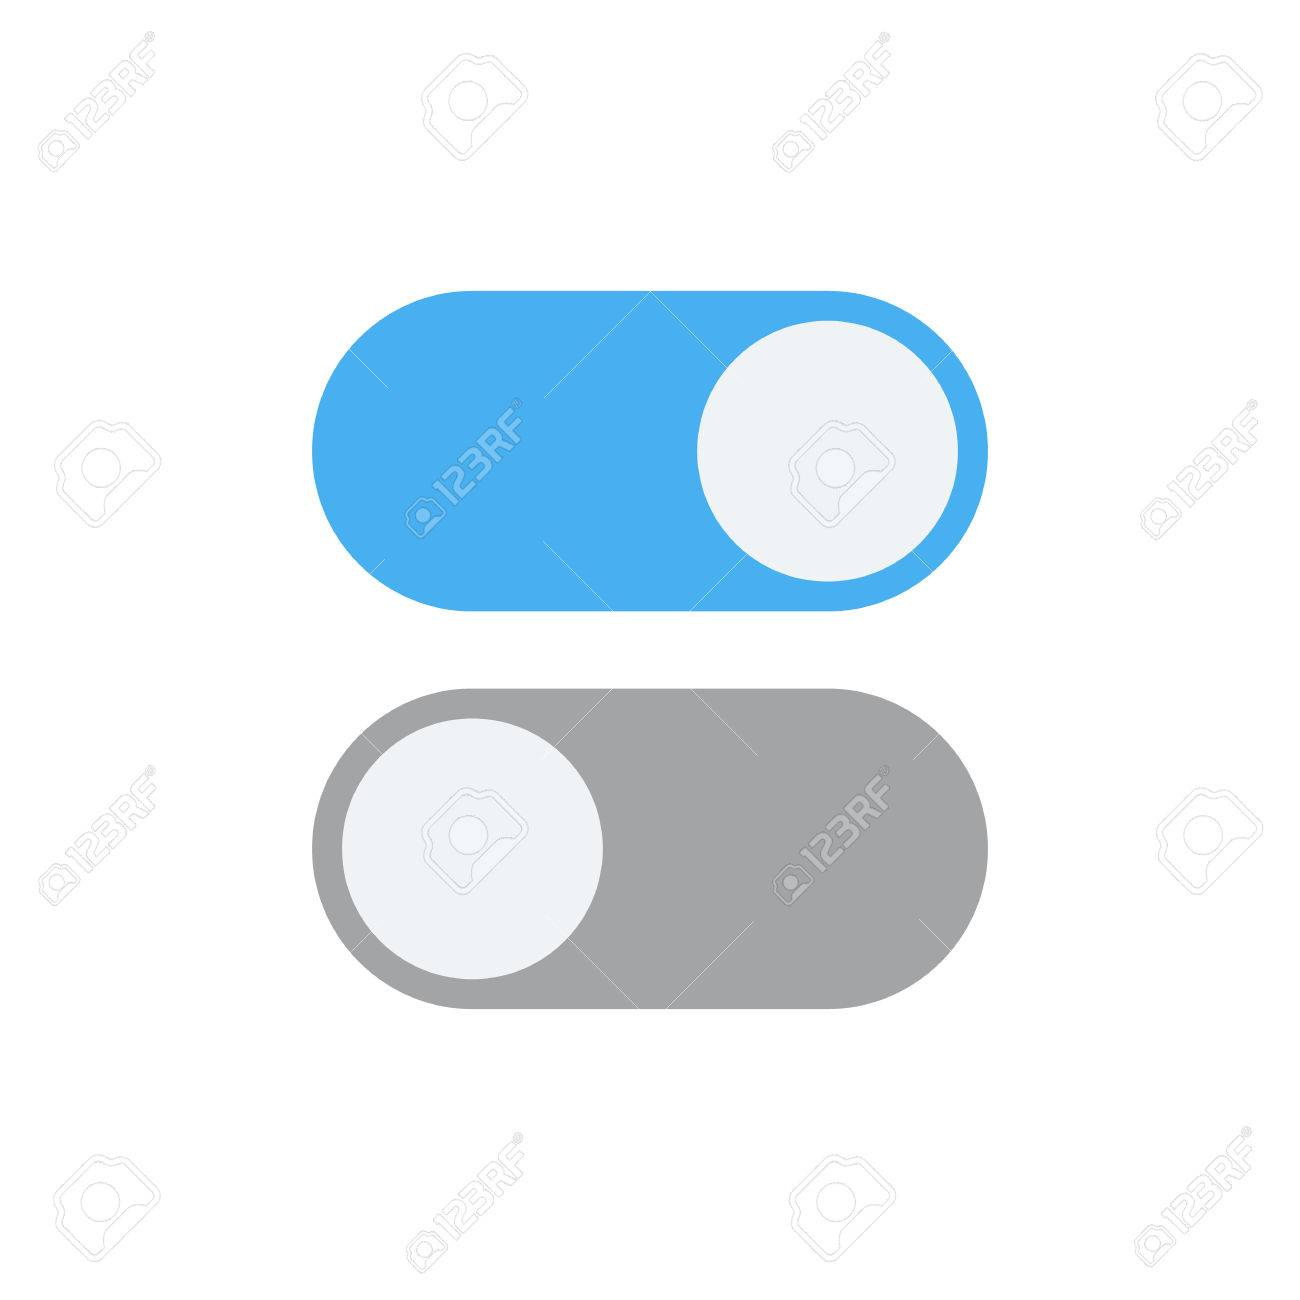 Toggle Switch Vector Icon, On And Off Position Simple Icons ...